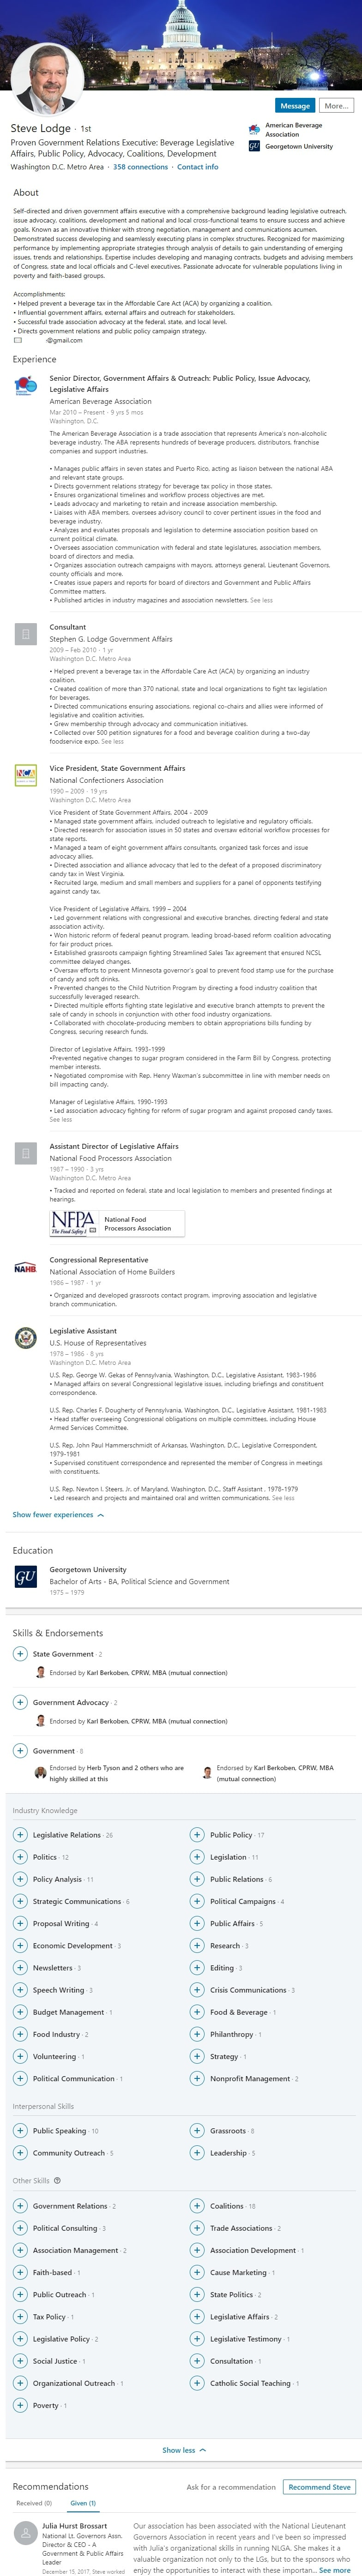 trade association government affairs LinkedIn Profile example 1937